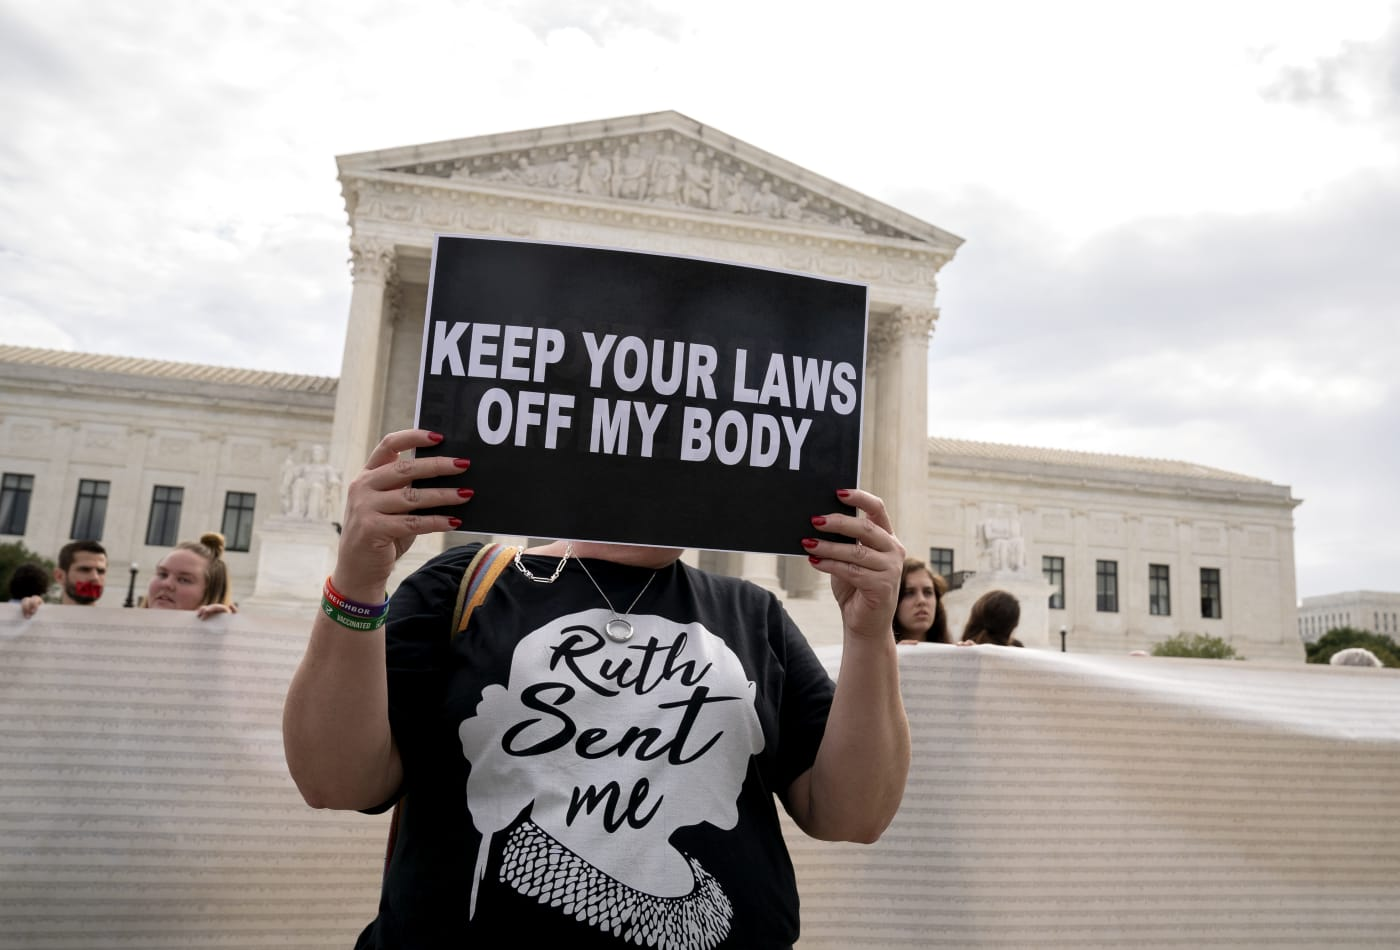 Supreme Court told it should reconsider Roe v. Wade if it takes up Texas abortion law challenge